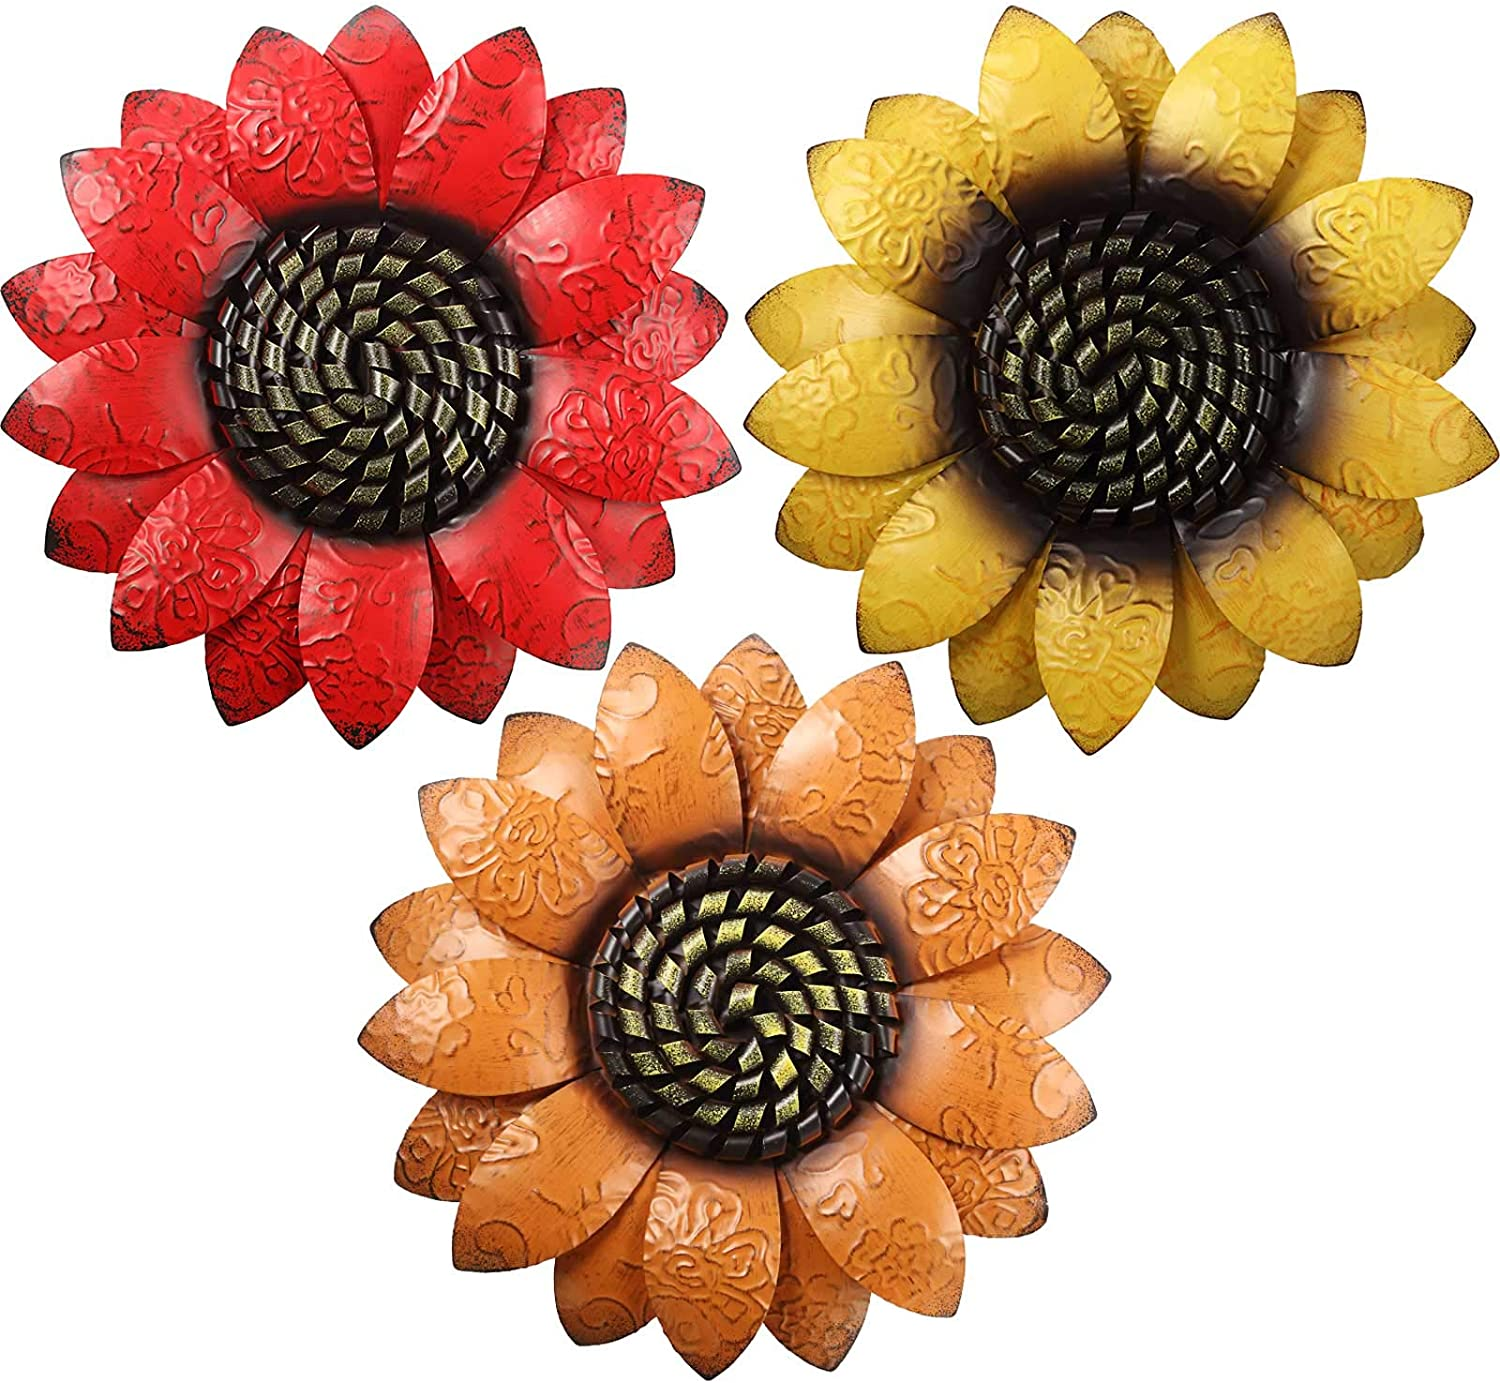 3 Pieces 13 Inch Metal Sunflower Wall Decor 3D Flower Wall Art Hanging Decoration for Bedroom Living Room Office Garden Indoor Outdoor Boho Home Decor, 3 Colors